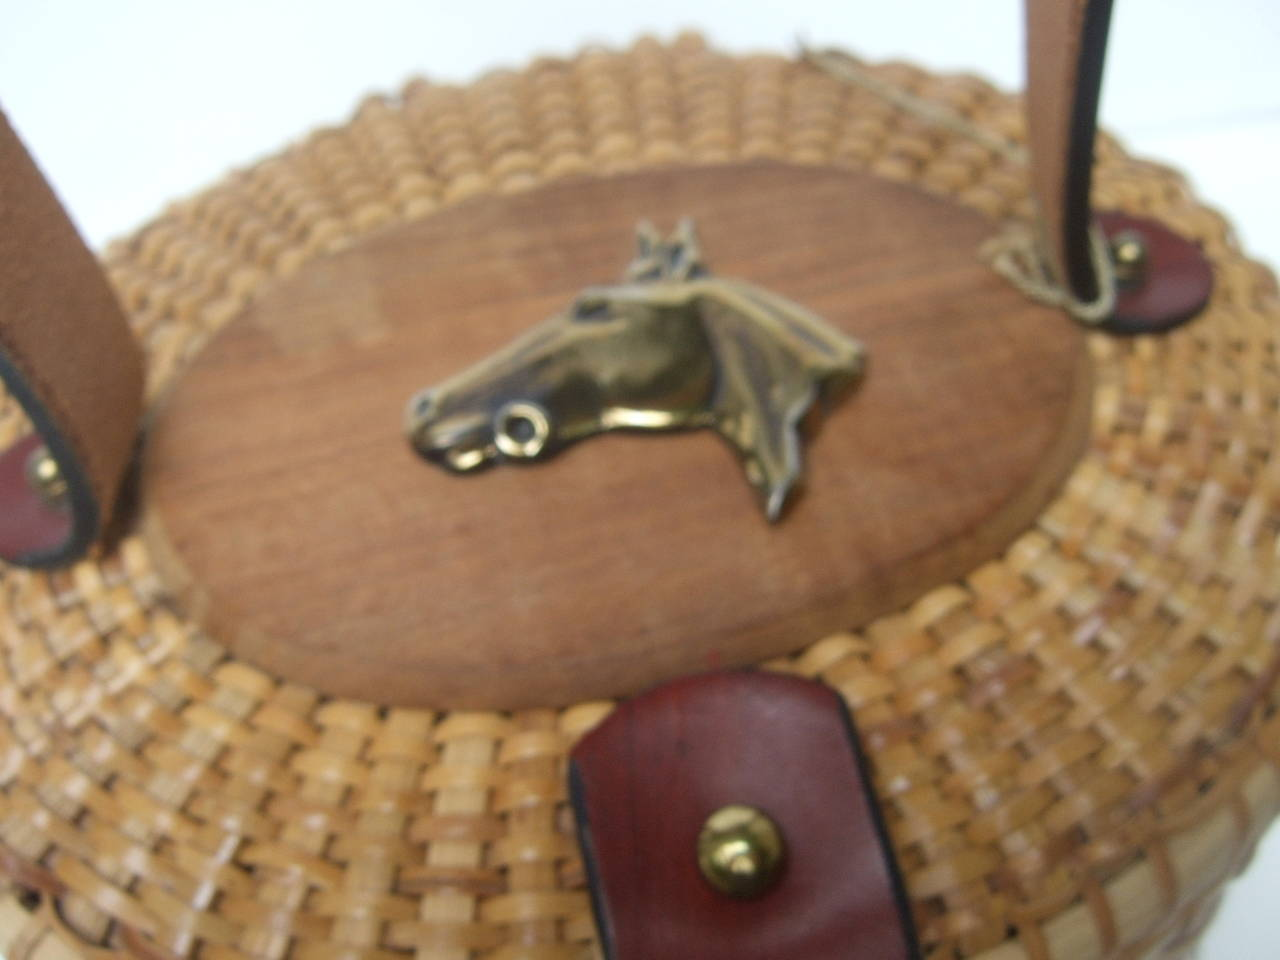 Oval Wicker Basket Equestrian Theme Handbag c 1970s For Sale 3